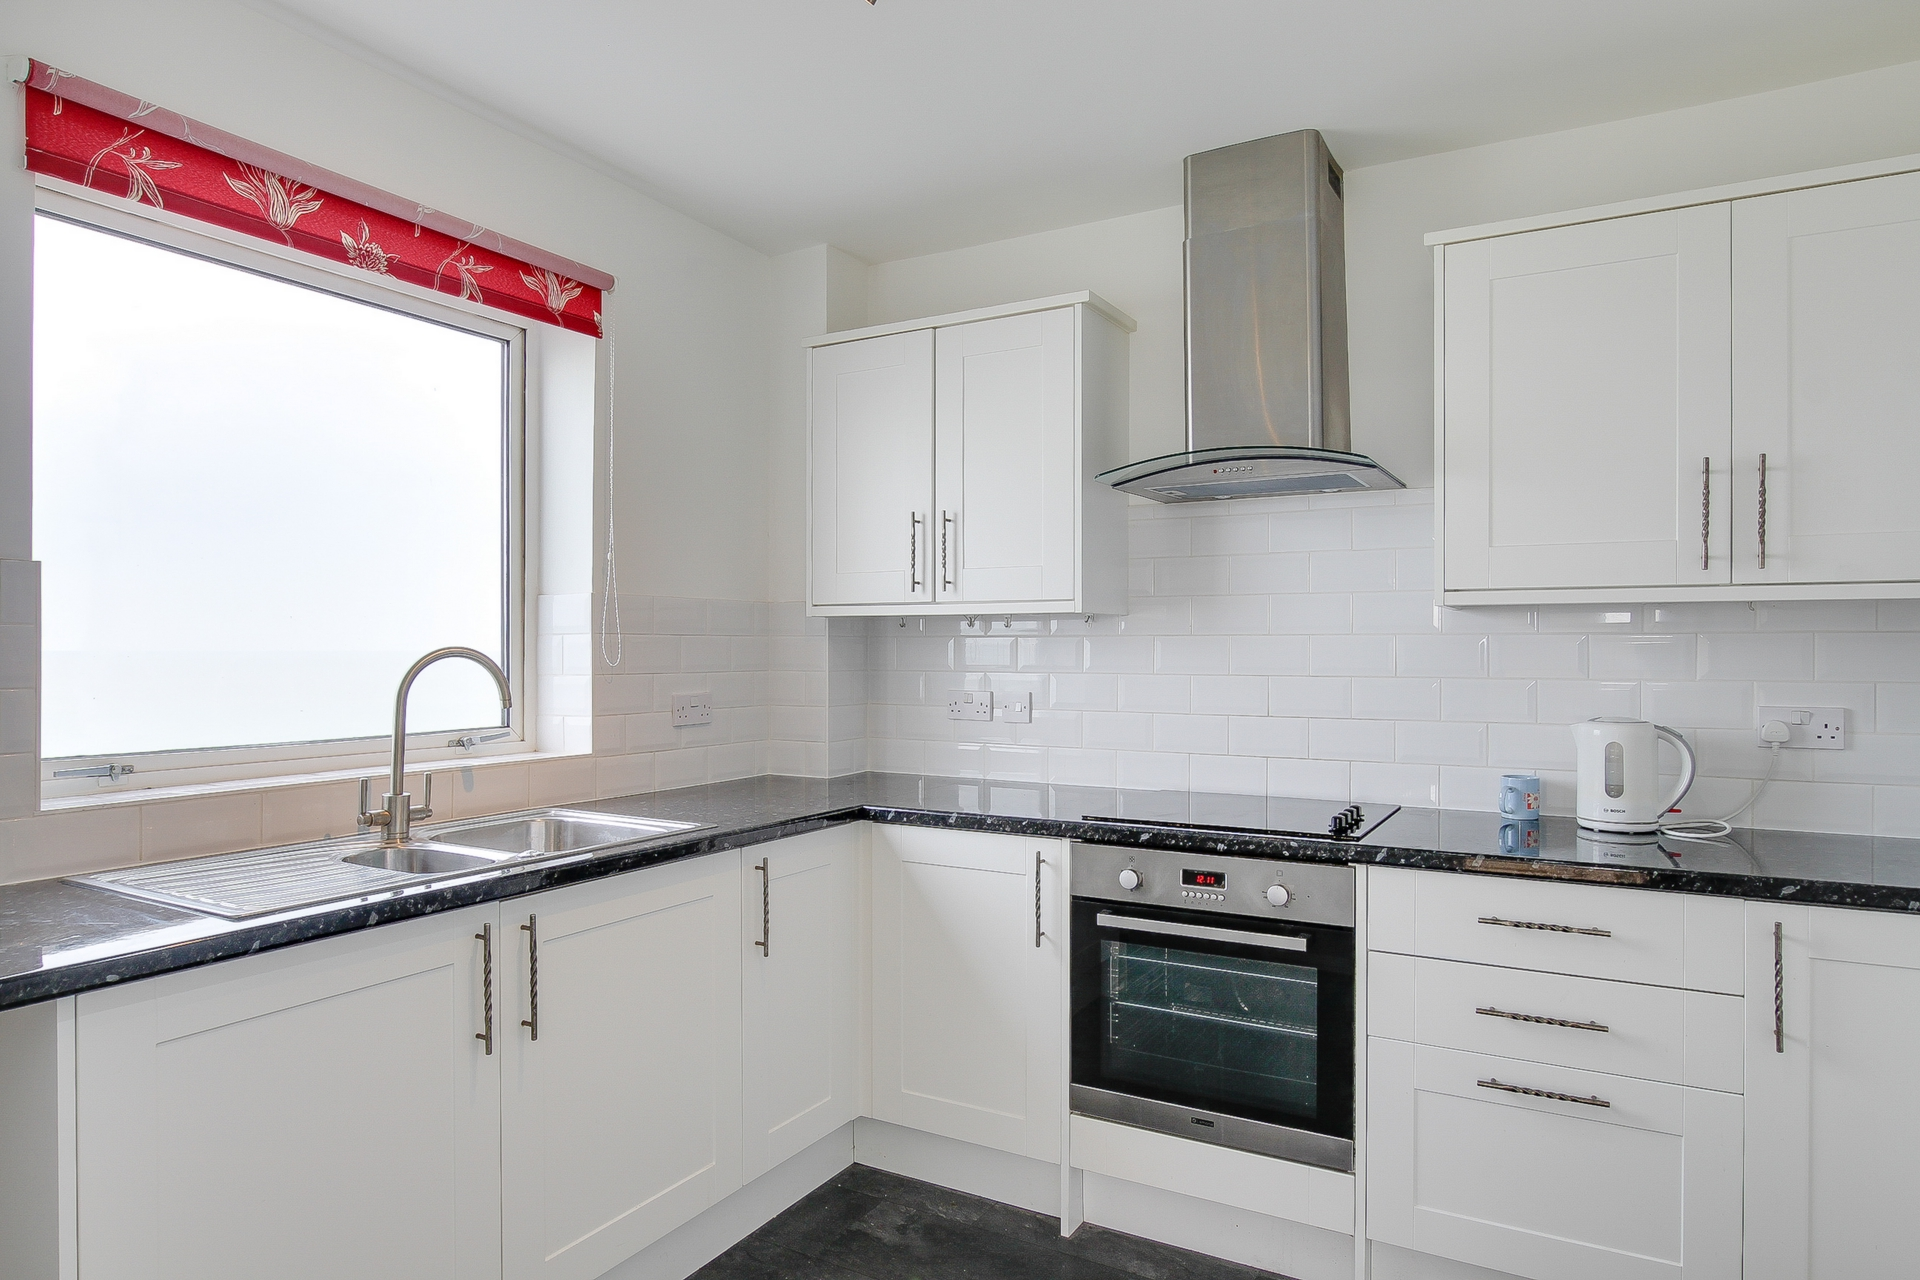 2 bed flat to rent in The Parade, Minnis Bay, CT7 5